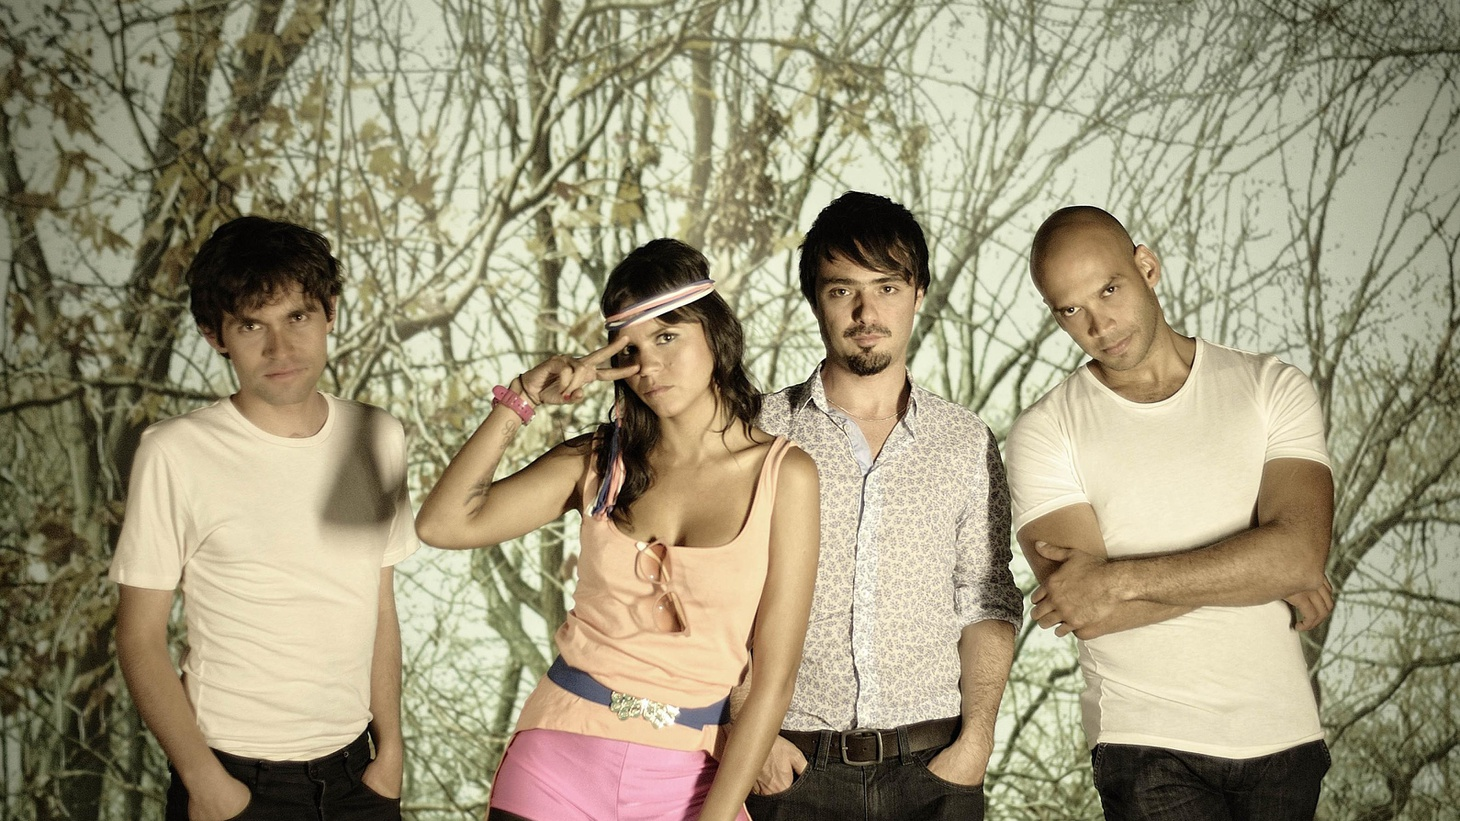 Raul interviews Bomba Estereo live from the Latin Alternative Music Conference in New York City.